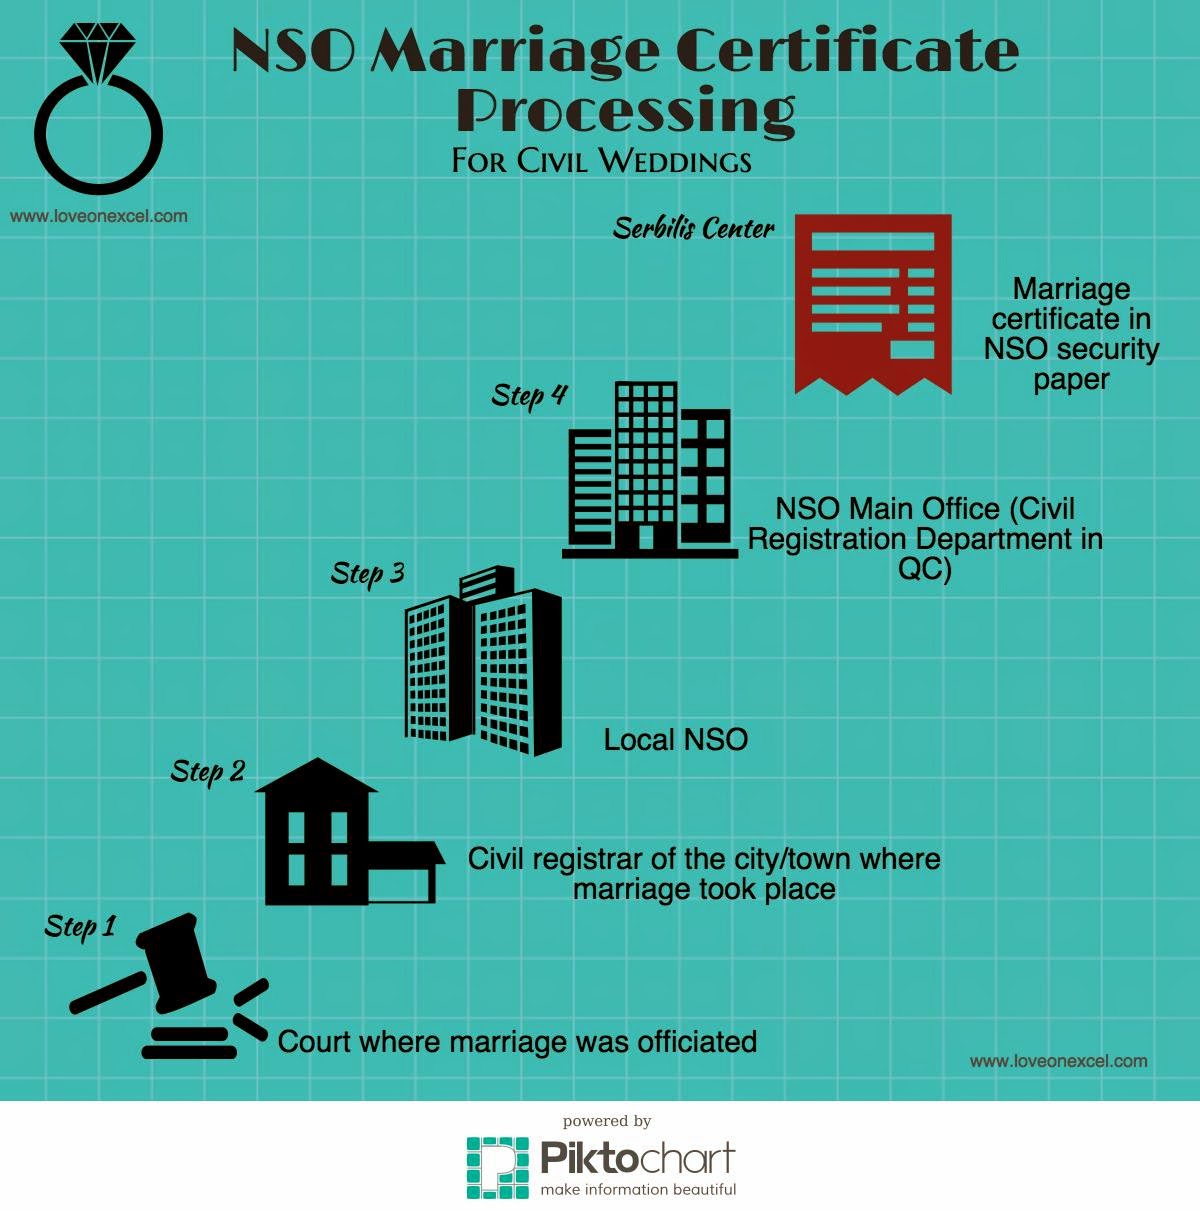 Speeding Up NSO Marriage Certificate Processing